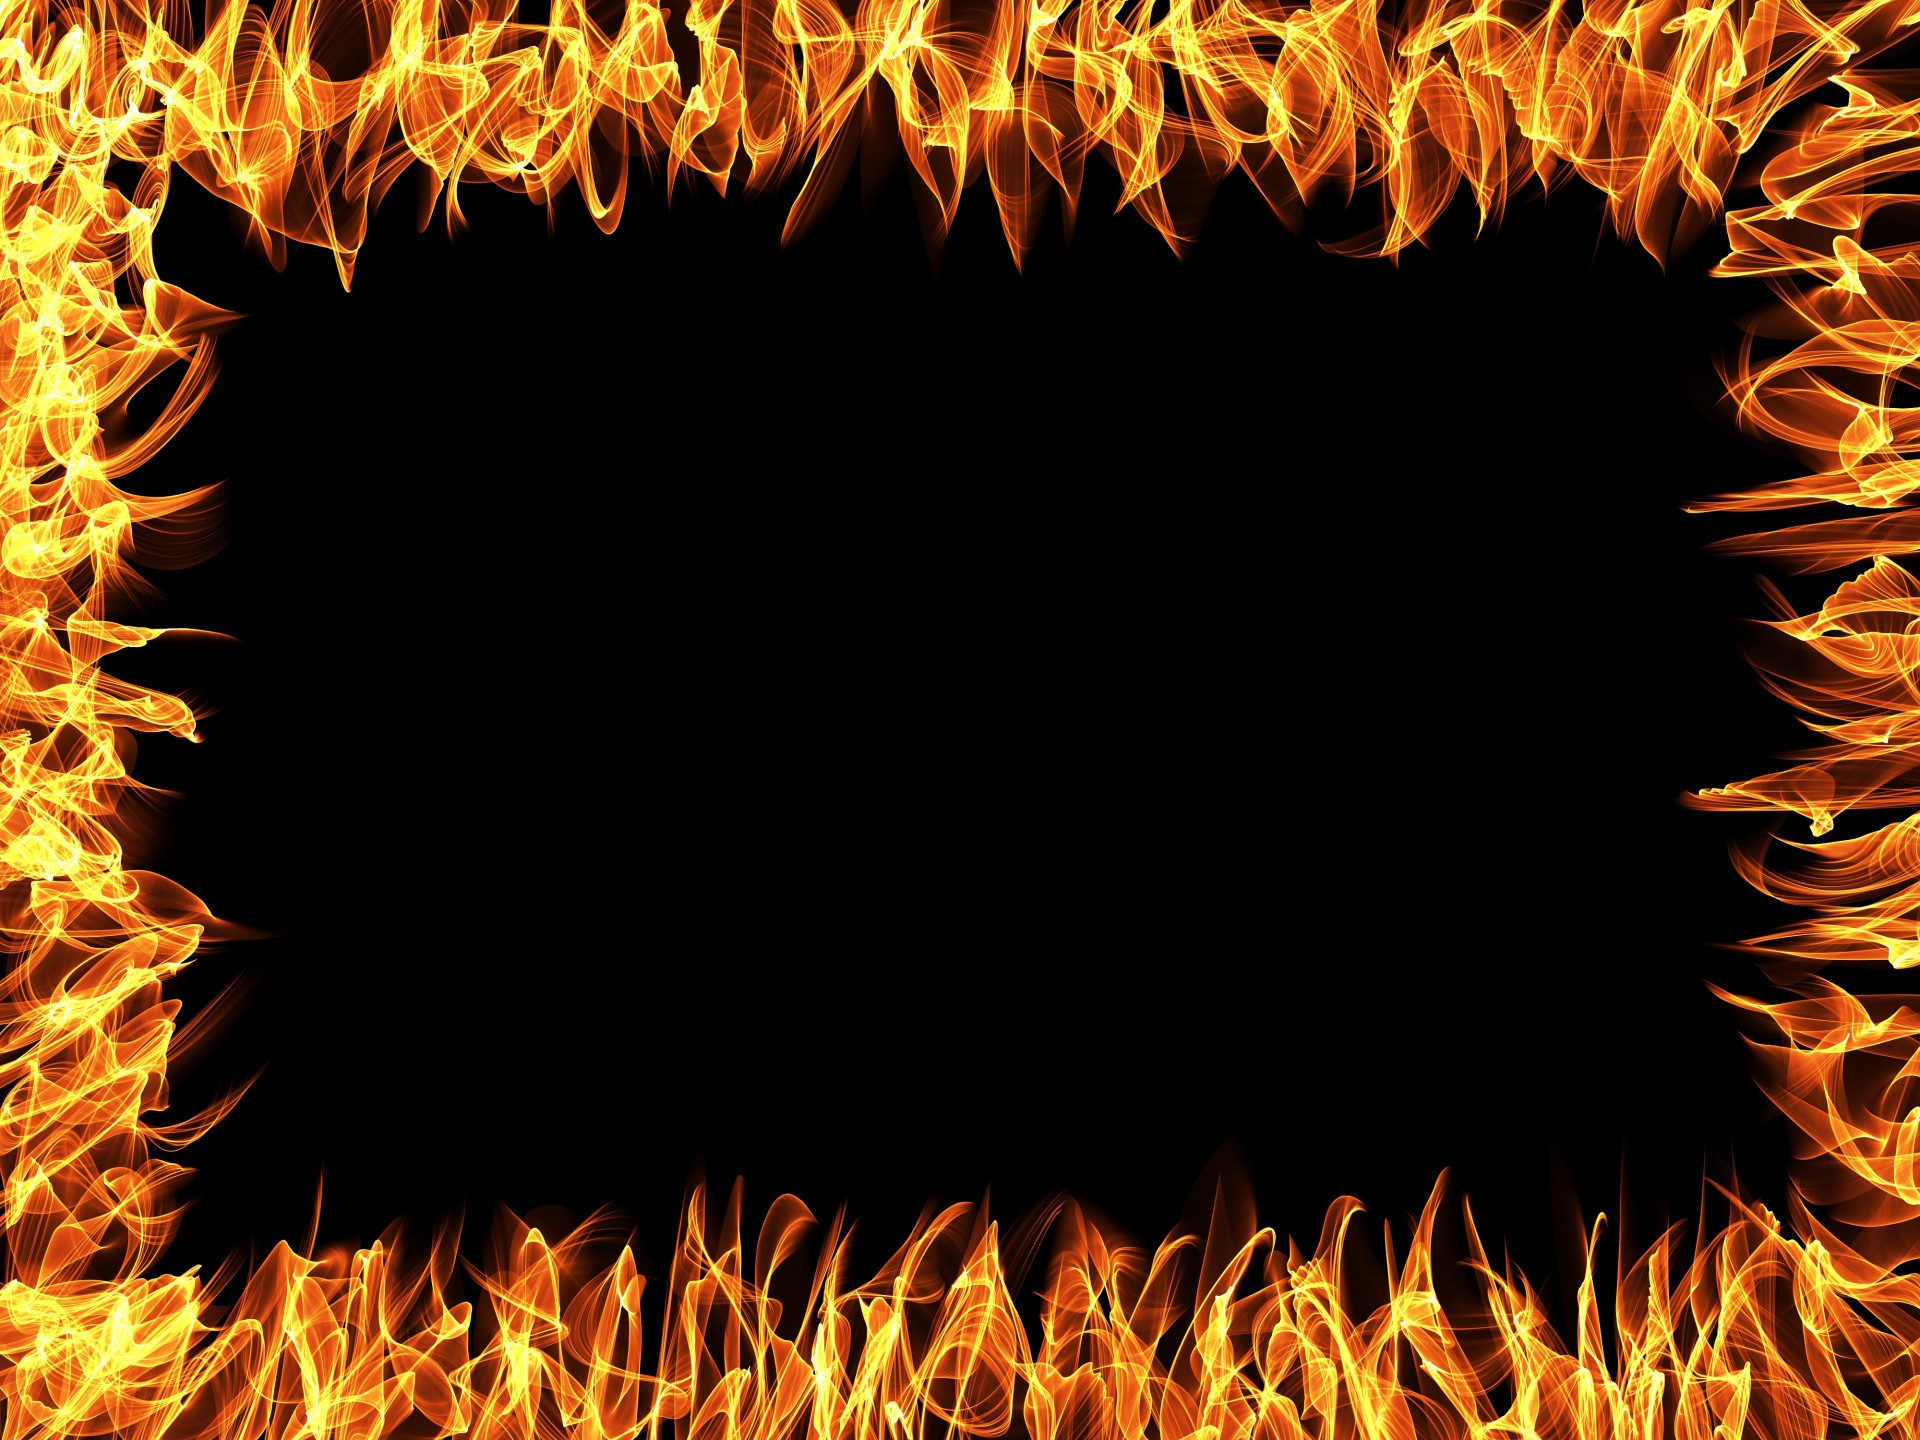 Fire border clipart free image free download Free Fire Cliparts Border, Download Free Clip Art, Free Clip Art on ... image free download